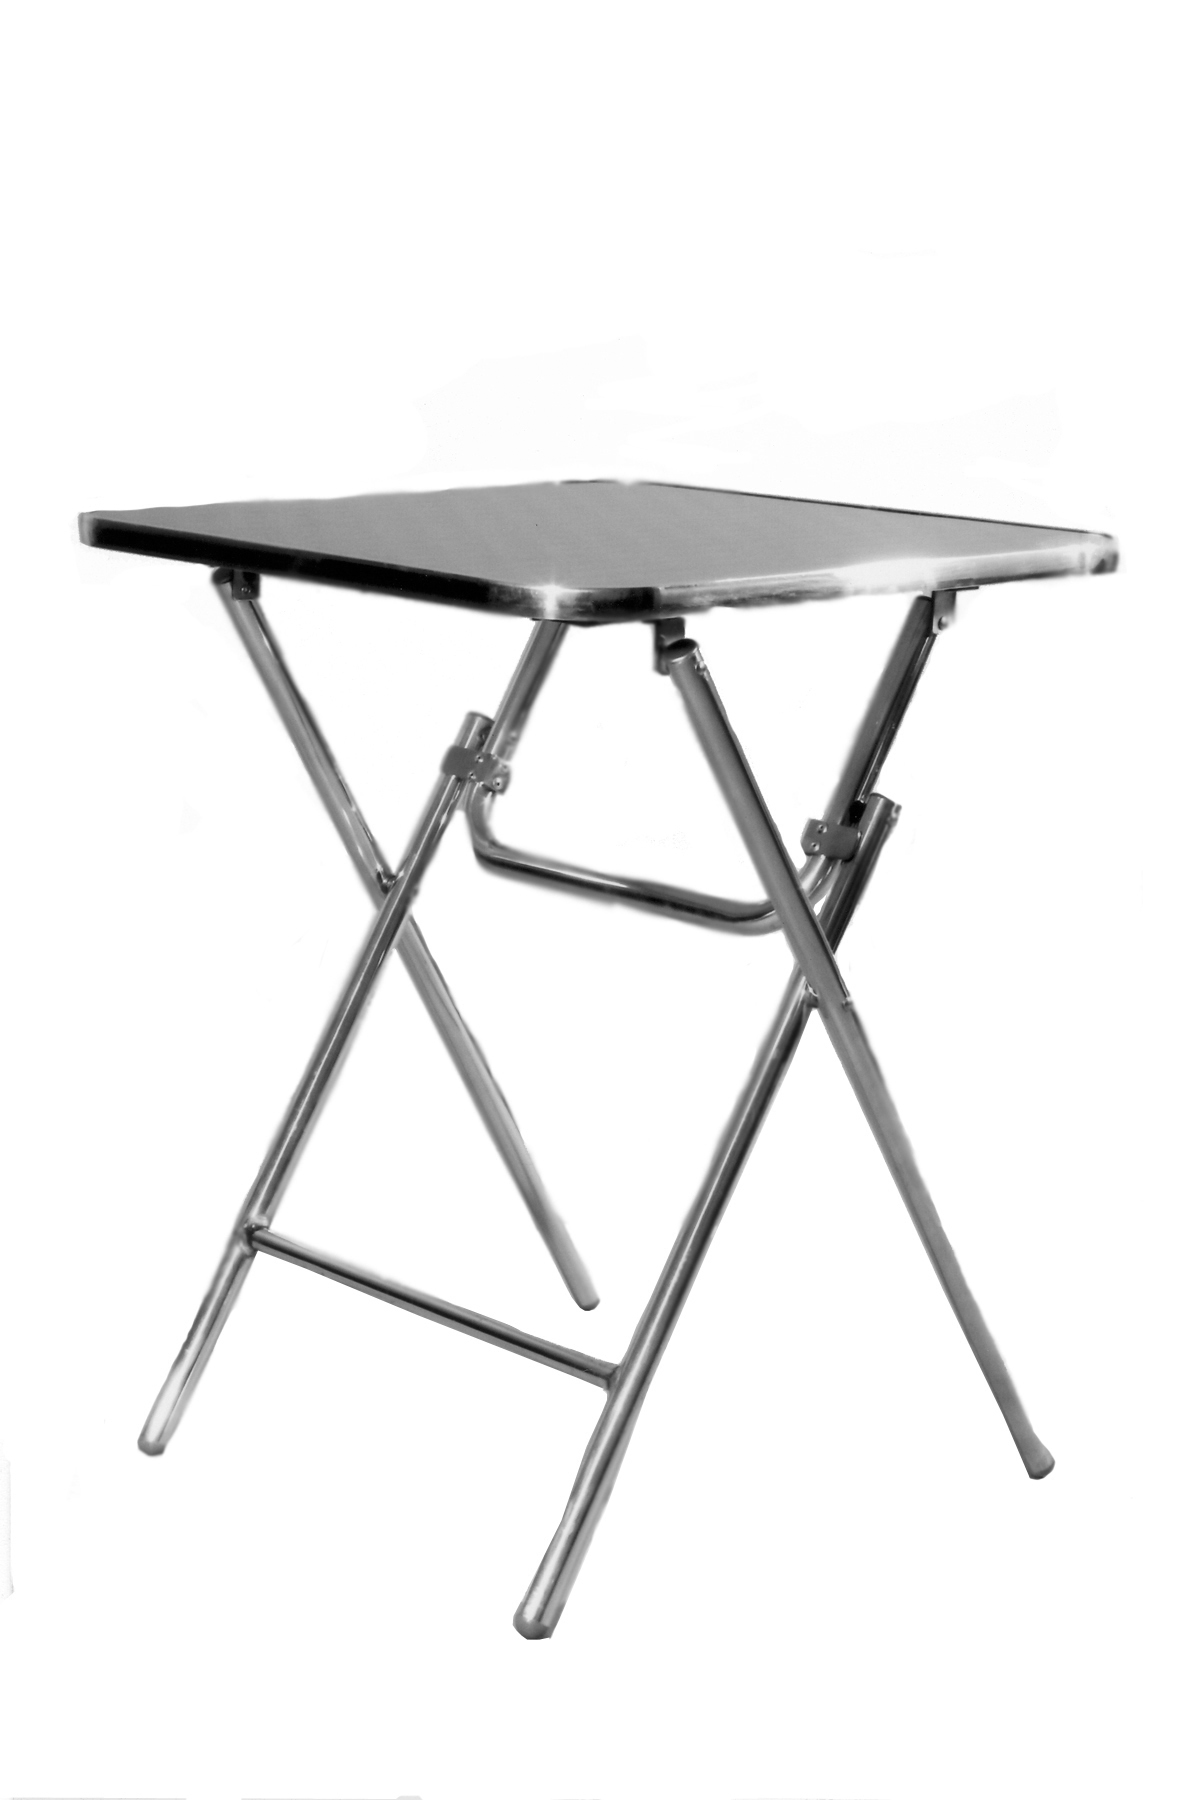 aluminium folding table with top of stainless steel holographic pattern